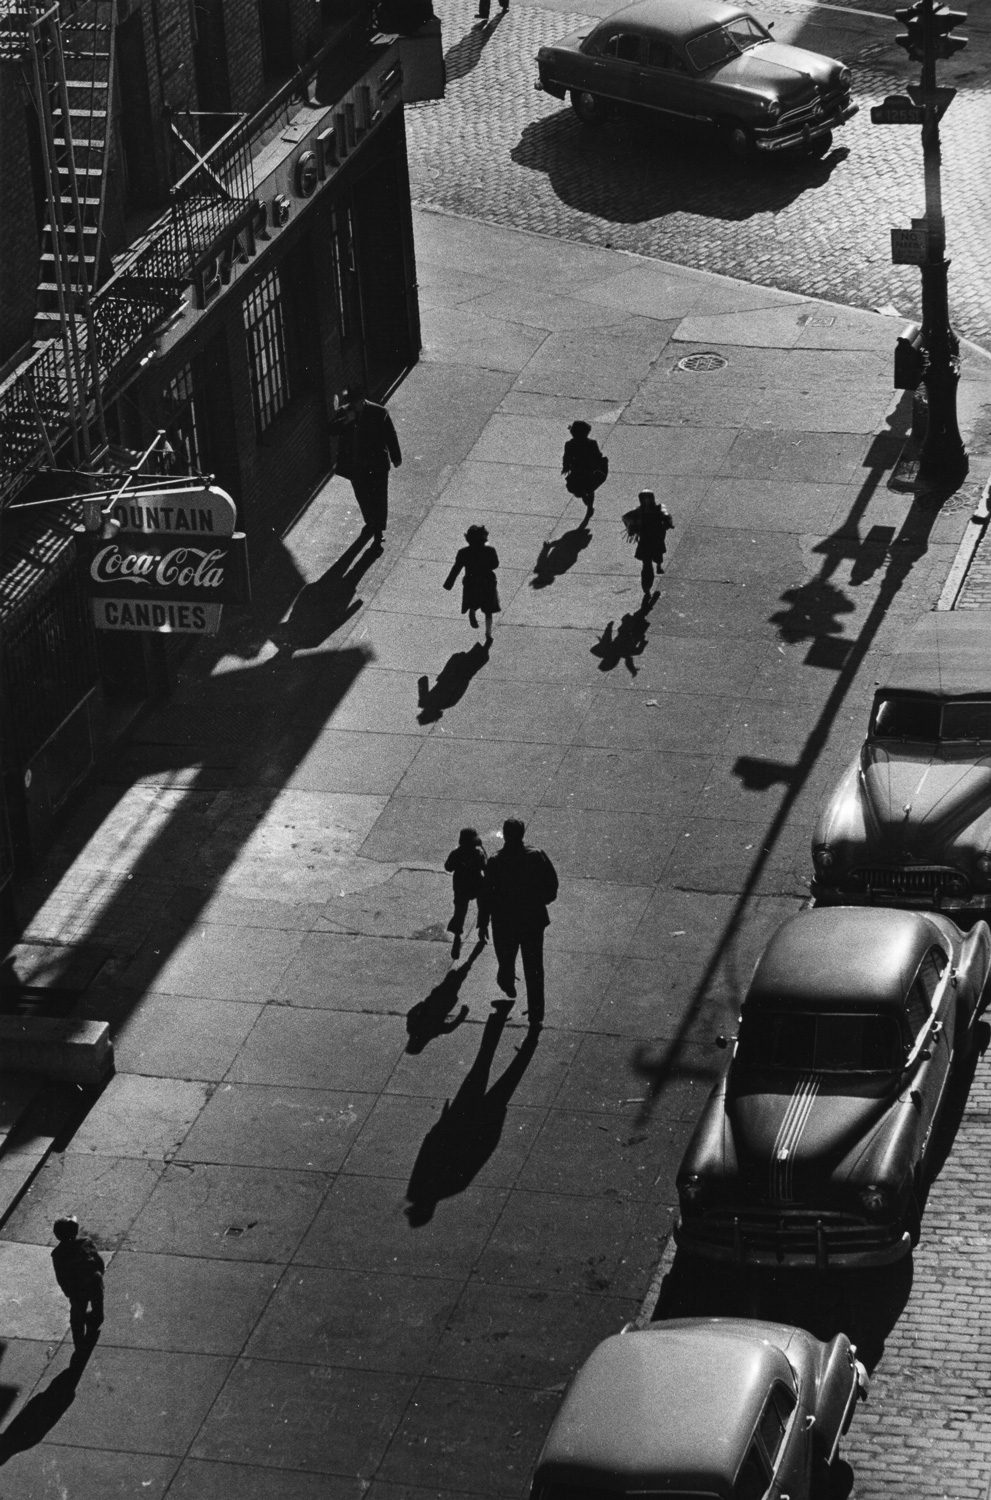 125th Street from Elevated Train, NYC